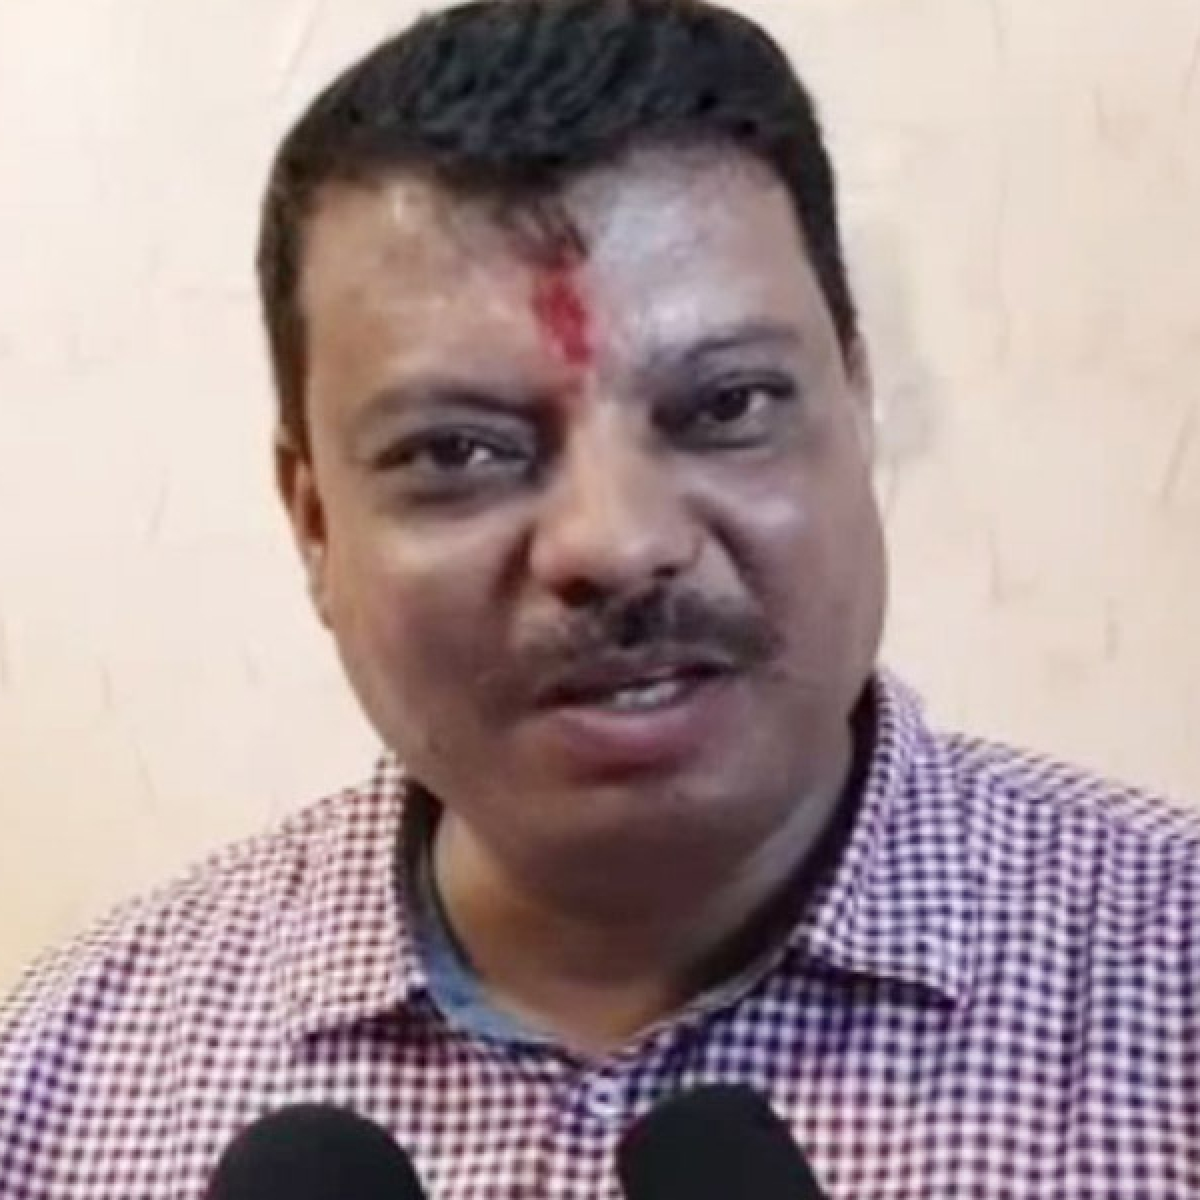 Bhopal: No action on Singhar